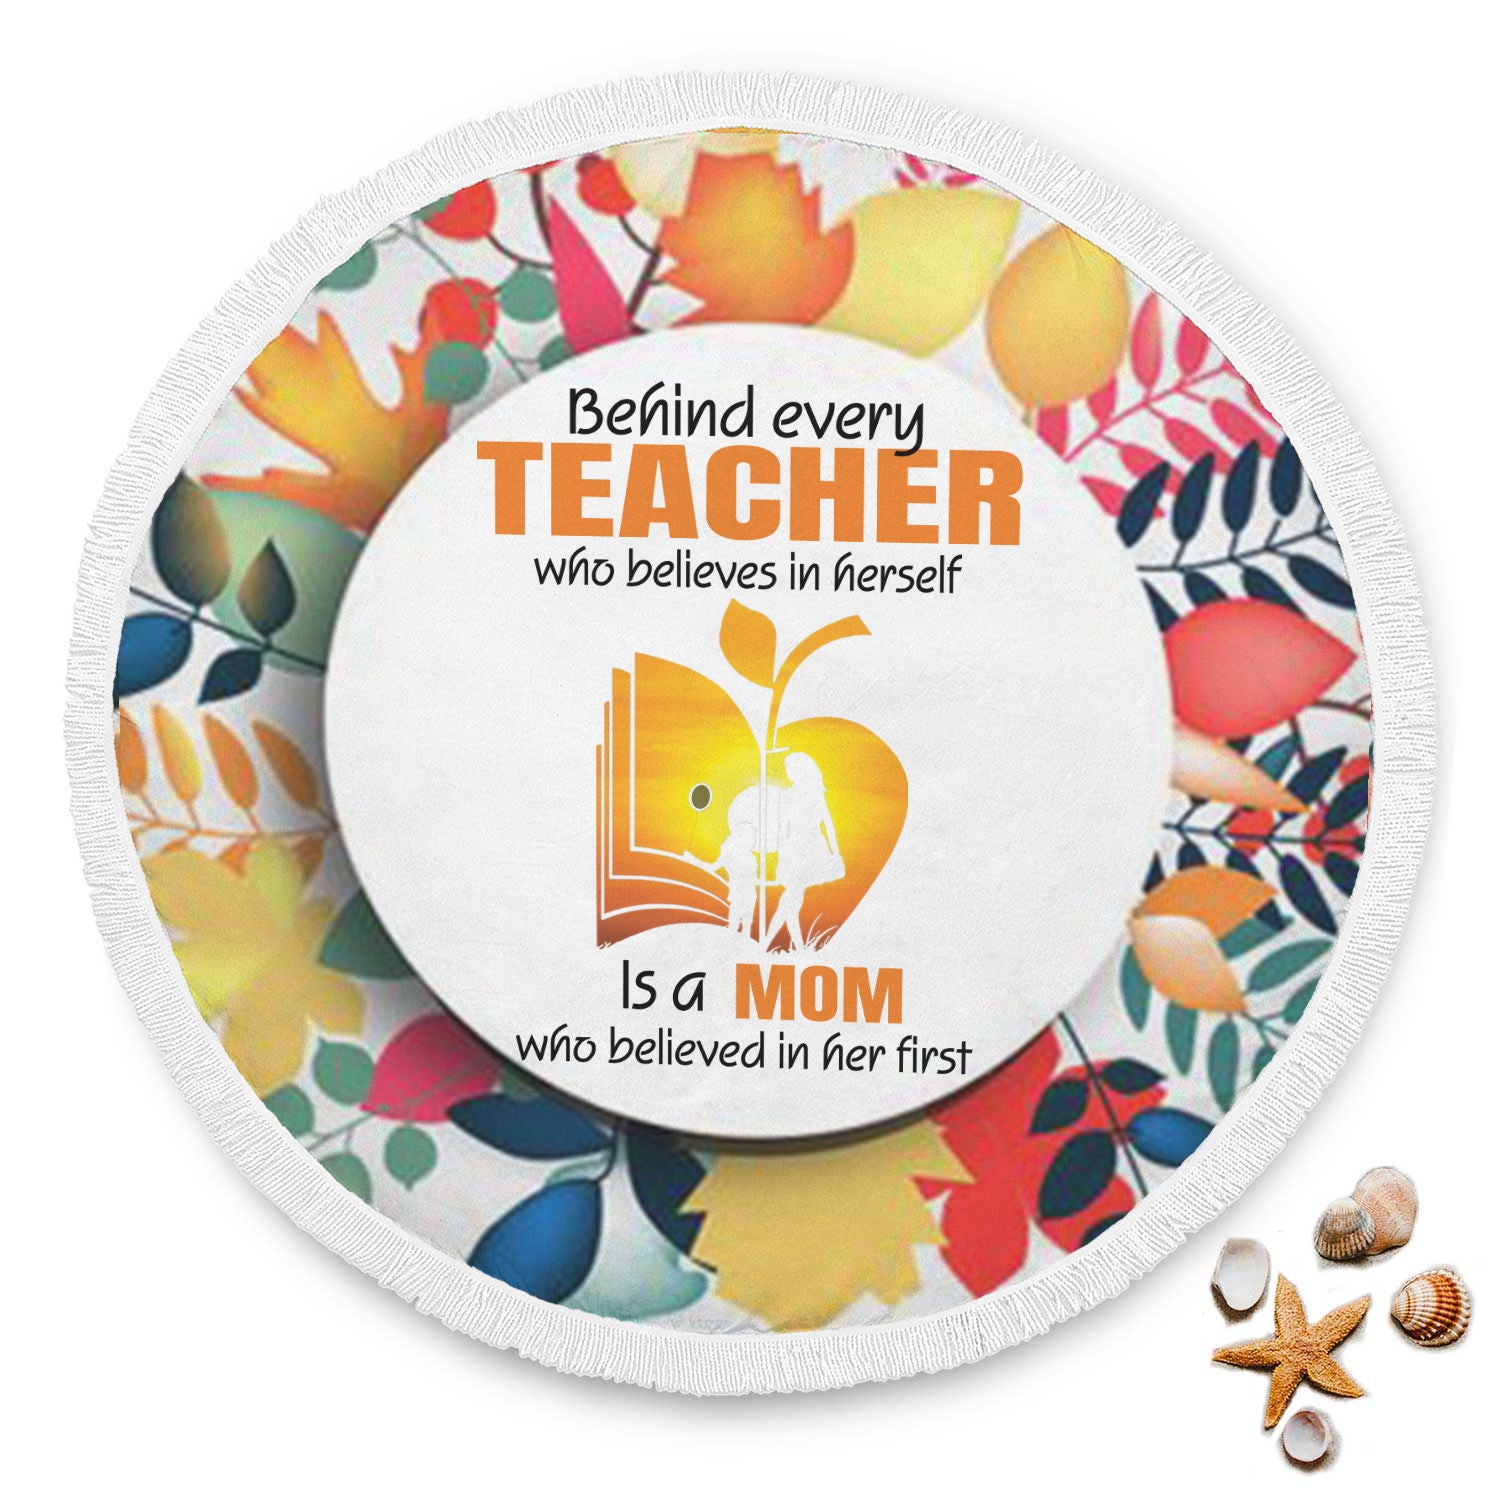 VIRA beach blanket for awesome teachers